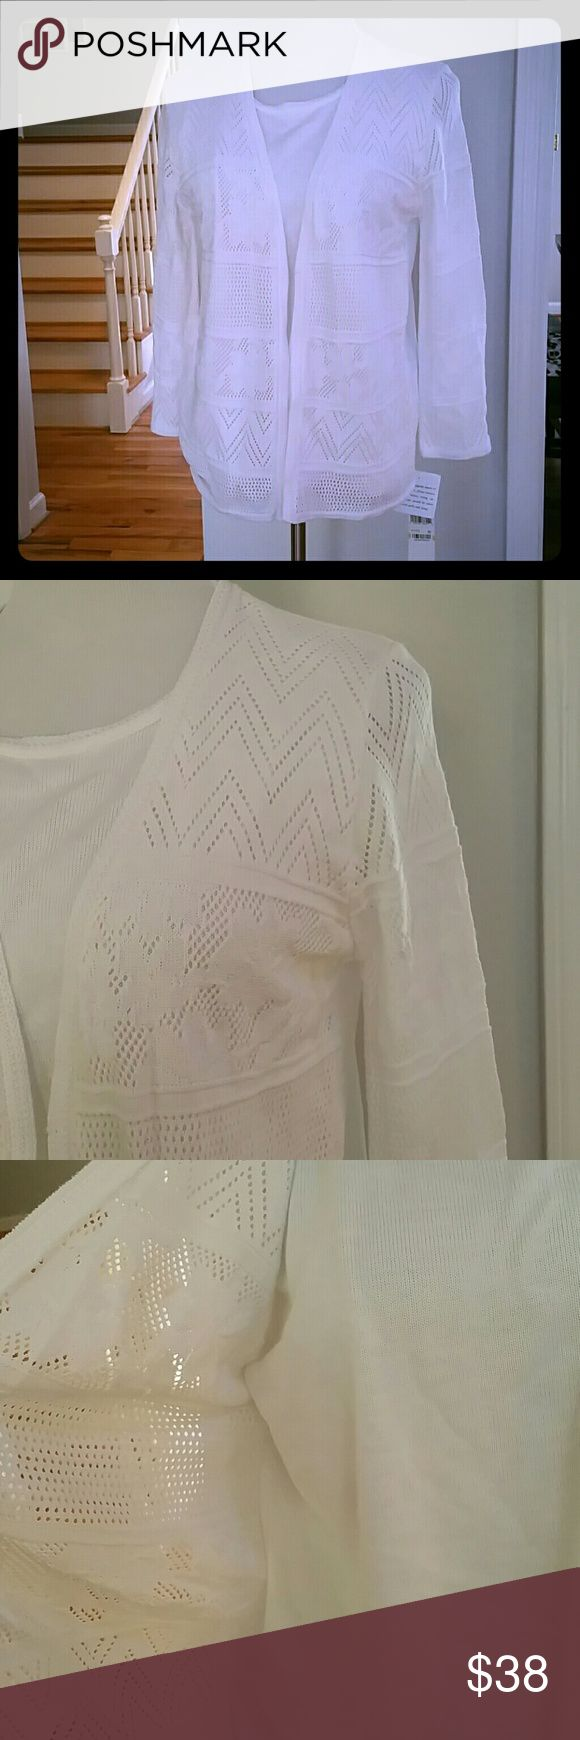 NWT ALFRED DUNNER TOP NWT Alfred Dunner Layered-Look Top Color : White  Size : Medium  Materials : 100% ACRYLIC Alfred Dunner Tops